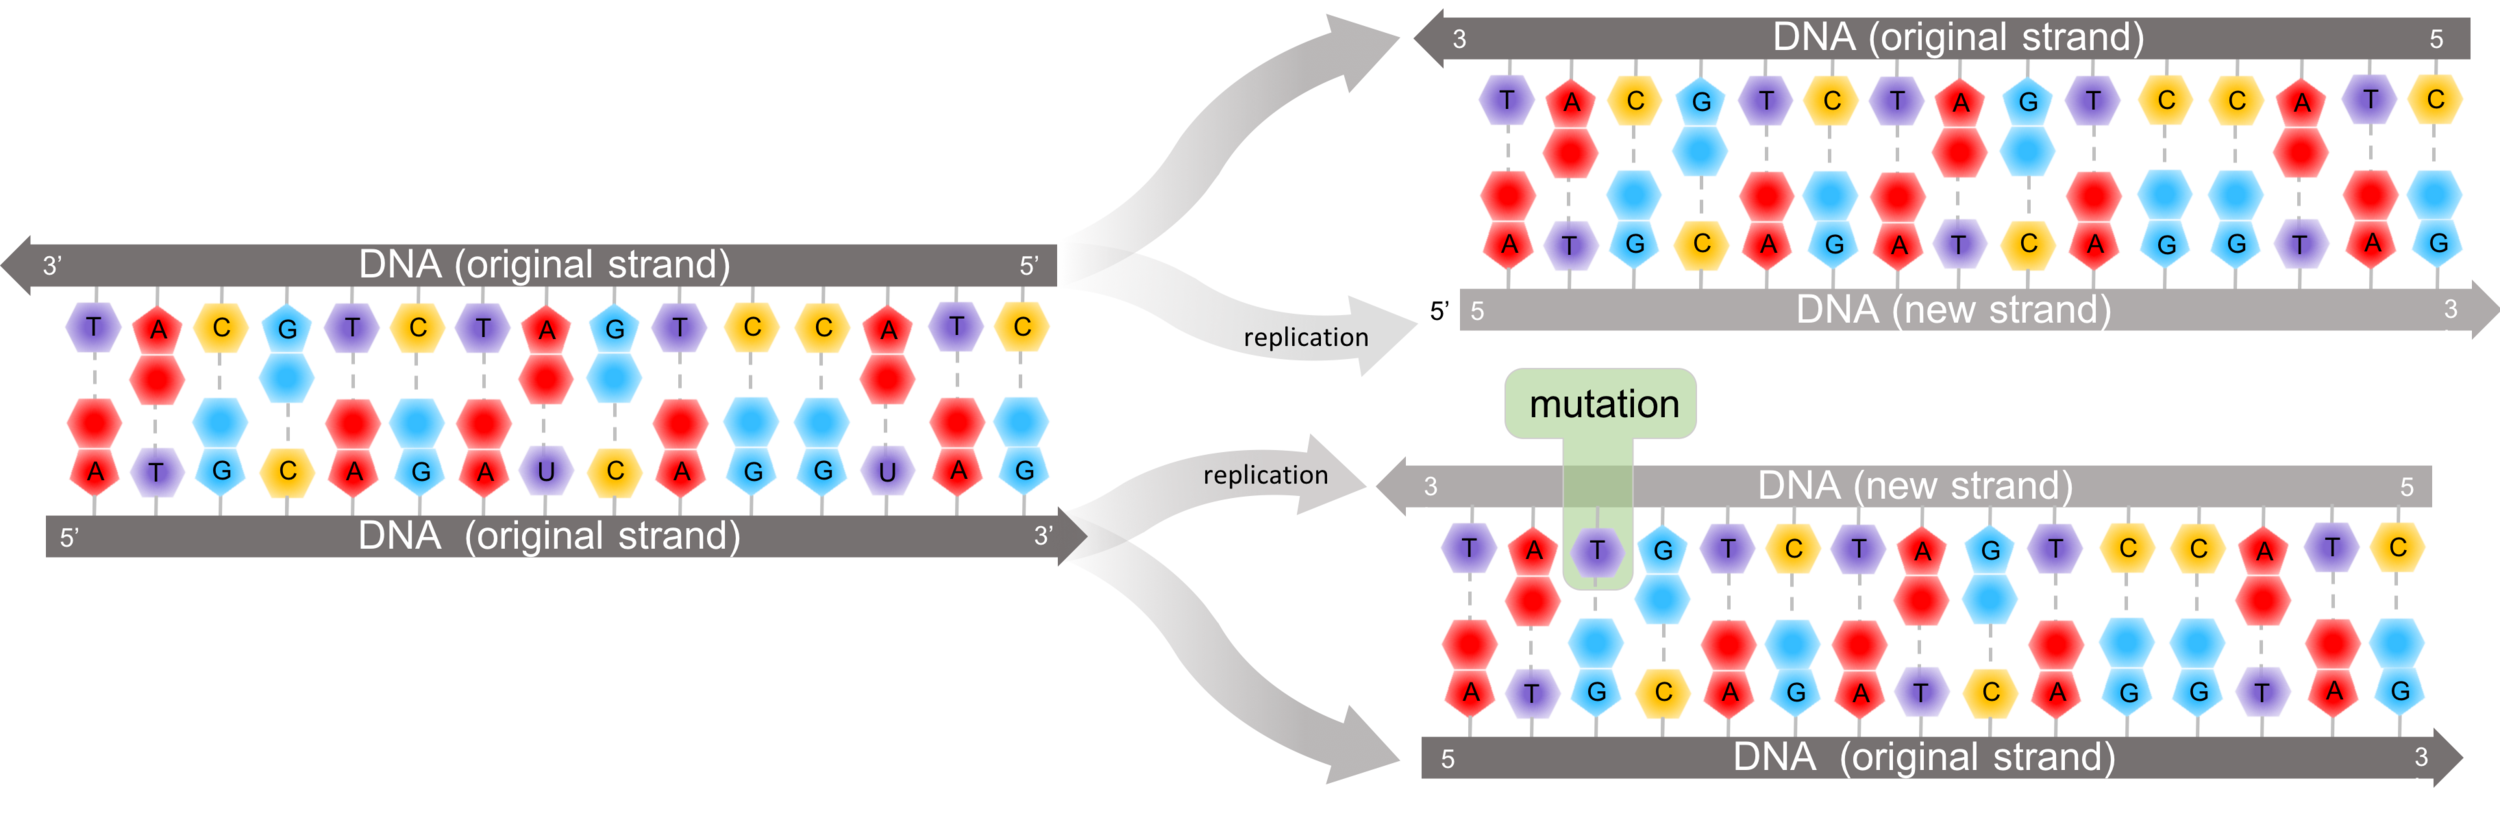 Figure 5.   Point mutations.  Point mutations are a change to a single deoxyribonucleotide, which happens during a mismatch during DNA replication. Point mutations can affect the eventual protein by changing an amino acid in the polypeptide chain.